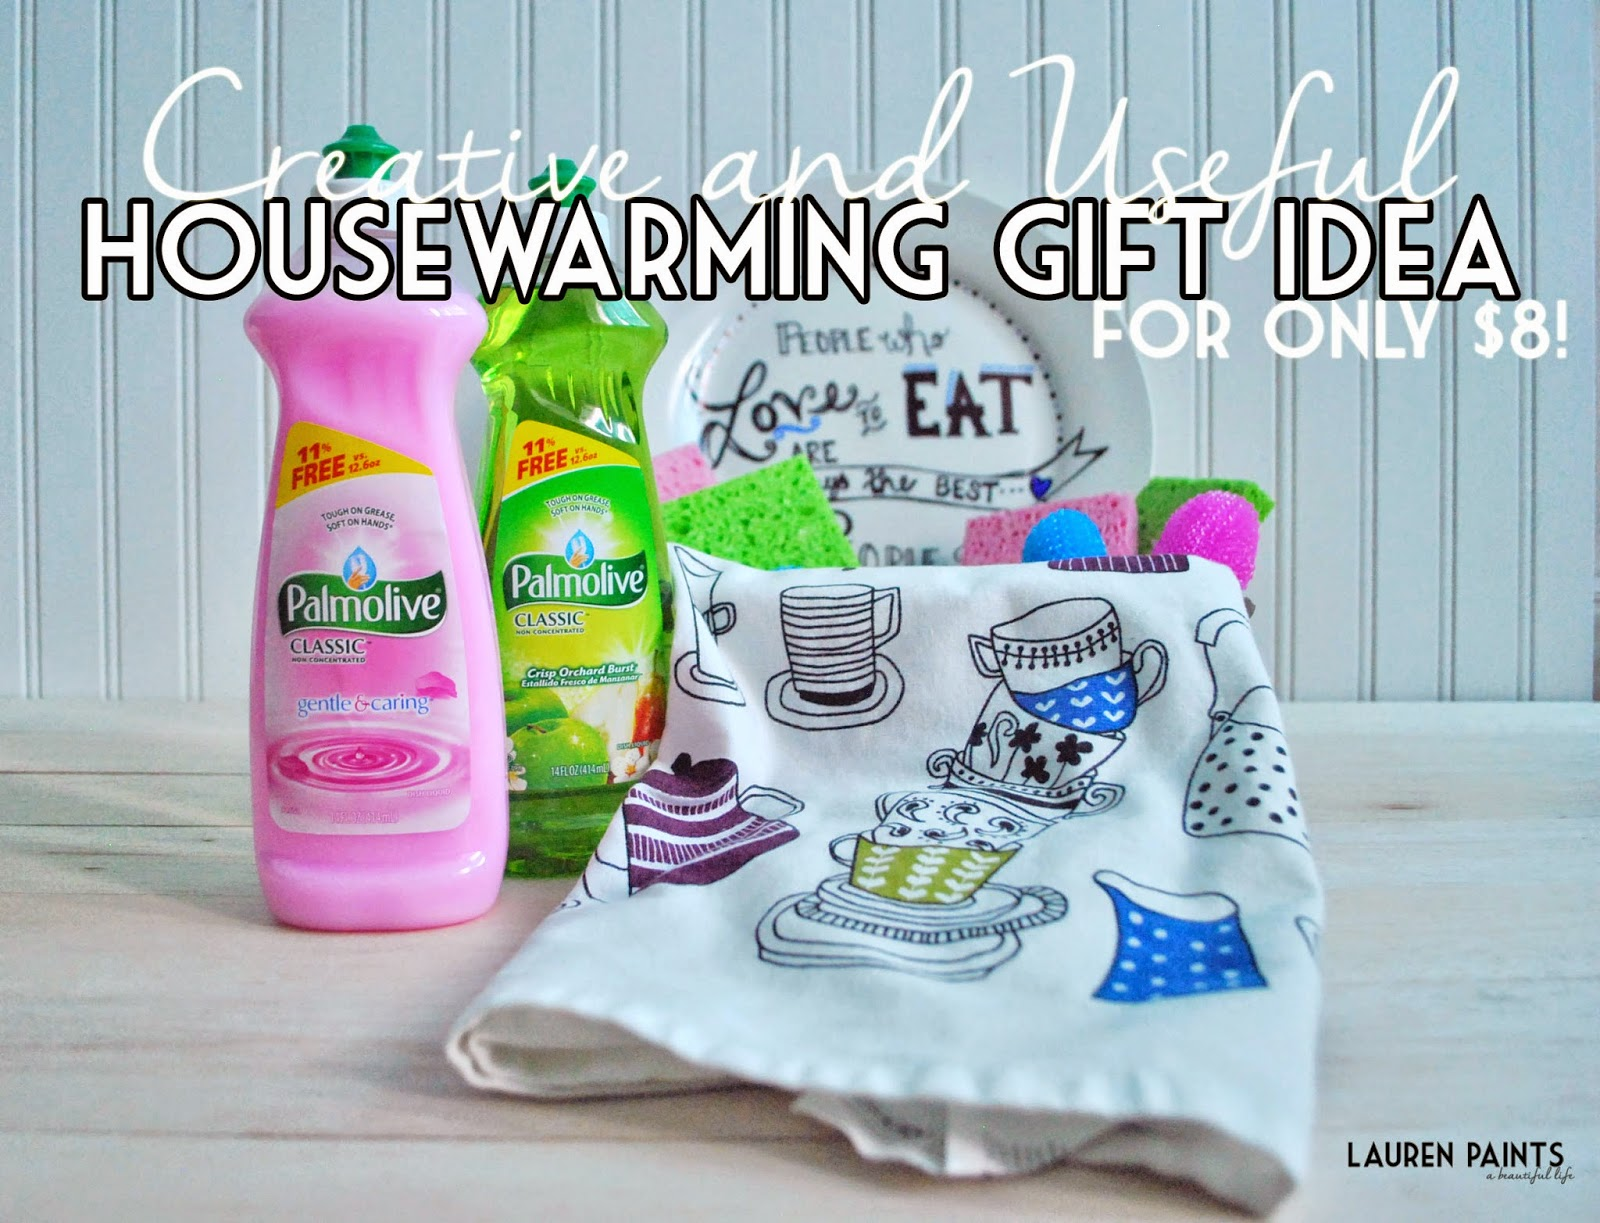 Welcome to Your New Home: A Creative and Useful Housewarming Gift Idea